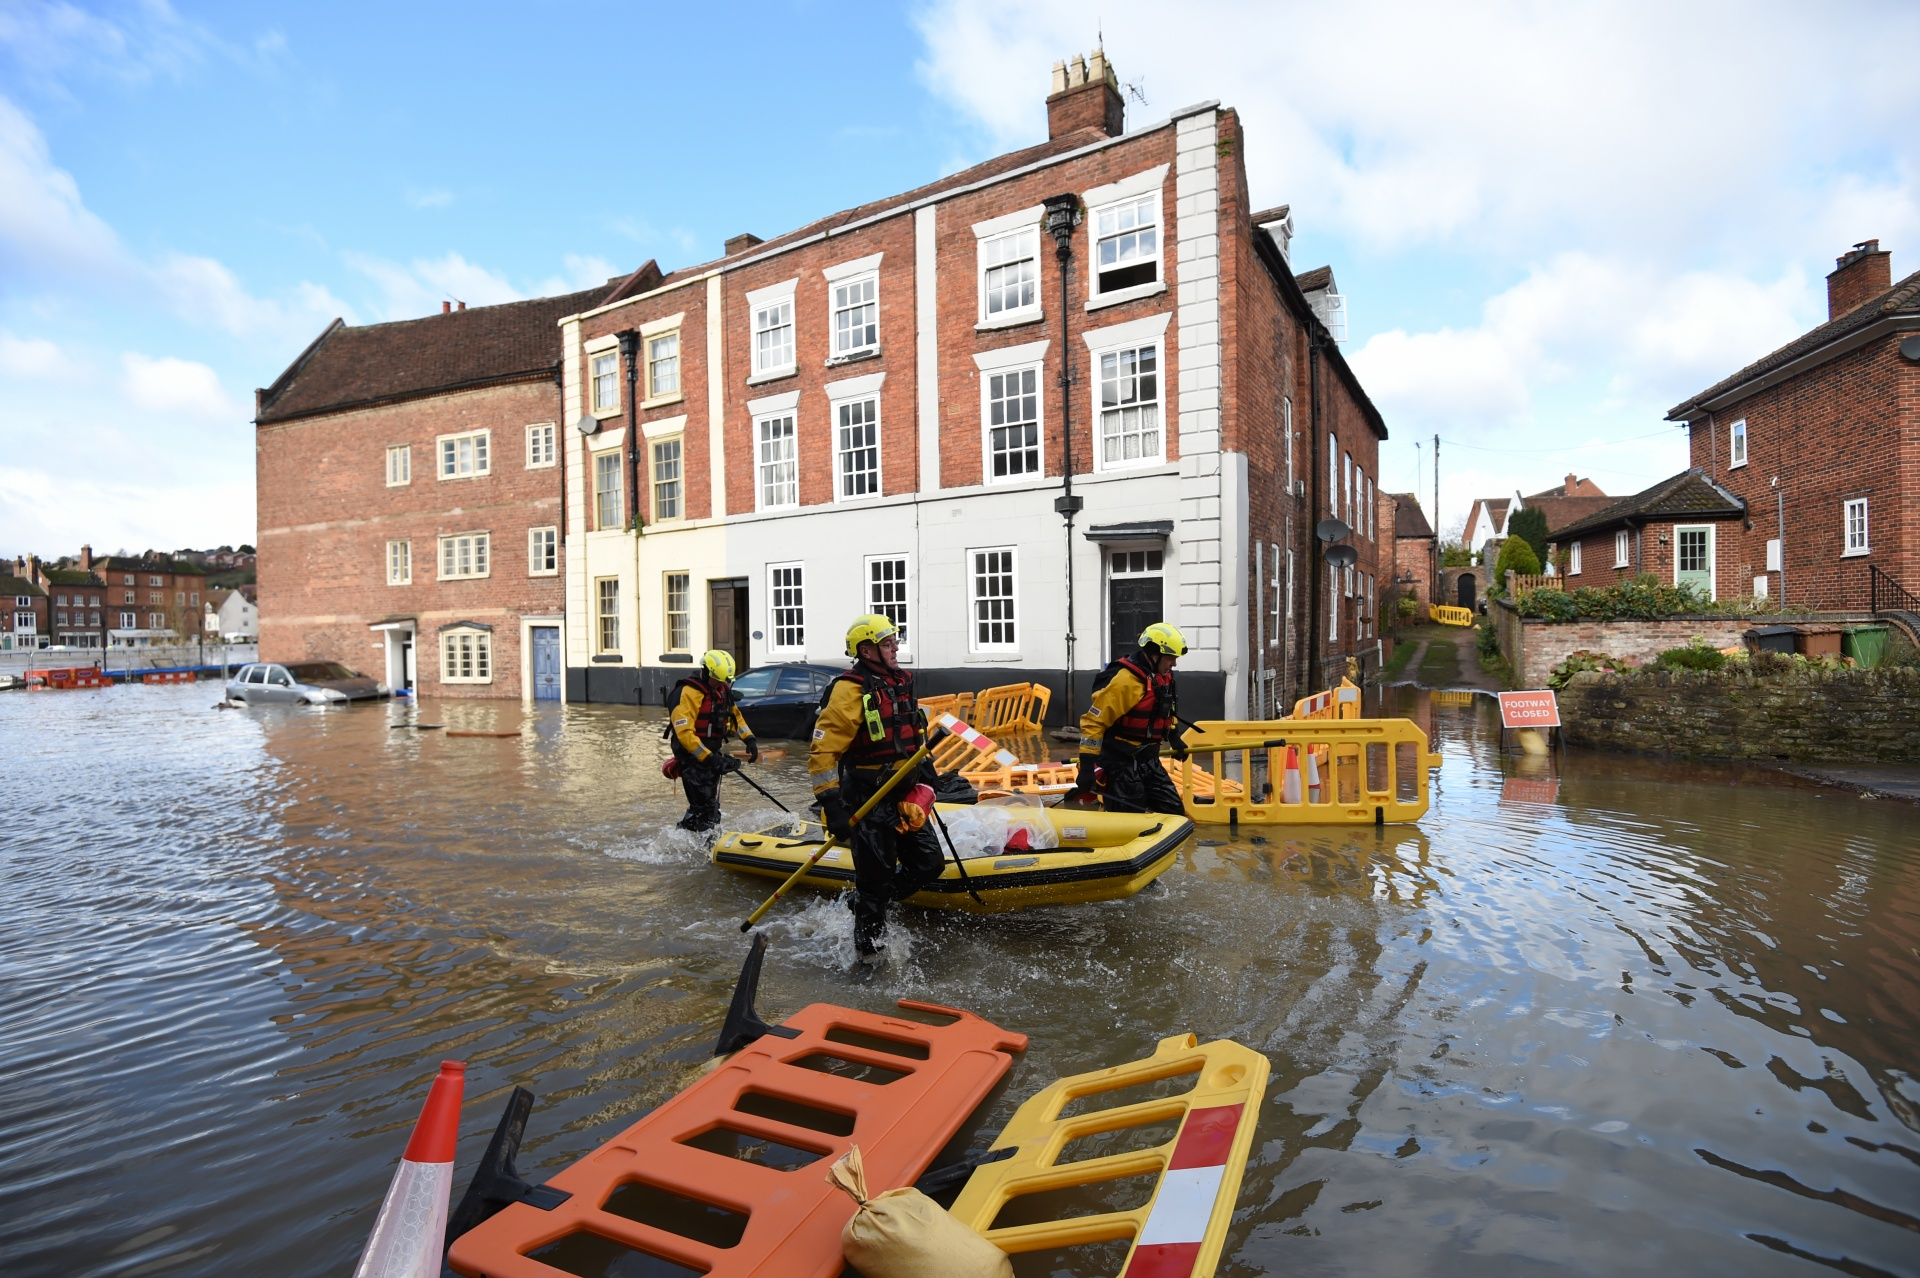 Fire and Rescue officers use an inflatable raft in Bewdley, Worcestershire, as the River Severn remains high, with warnings of further flooding across Britain